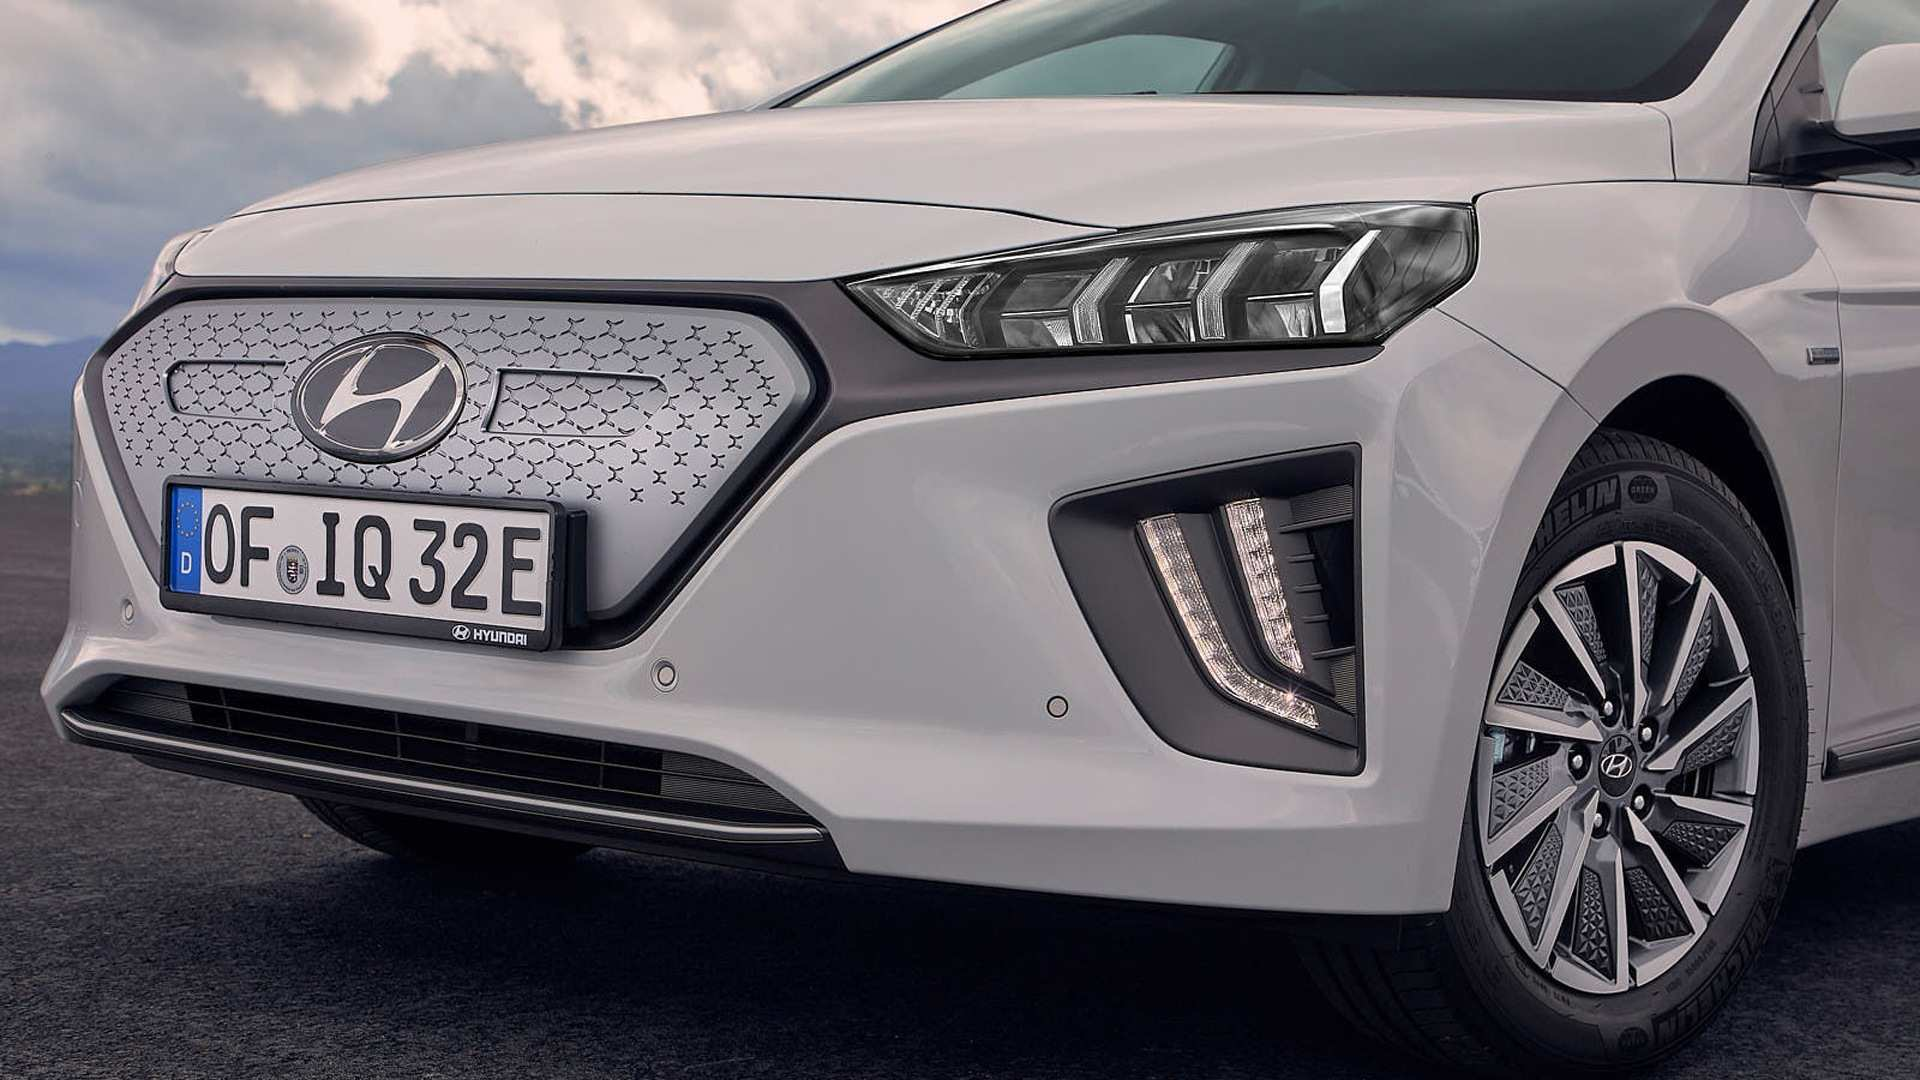 73 New Hyundai Electric Suv 2020 Price And Review